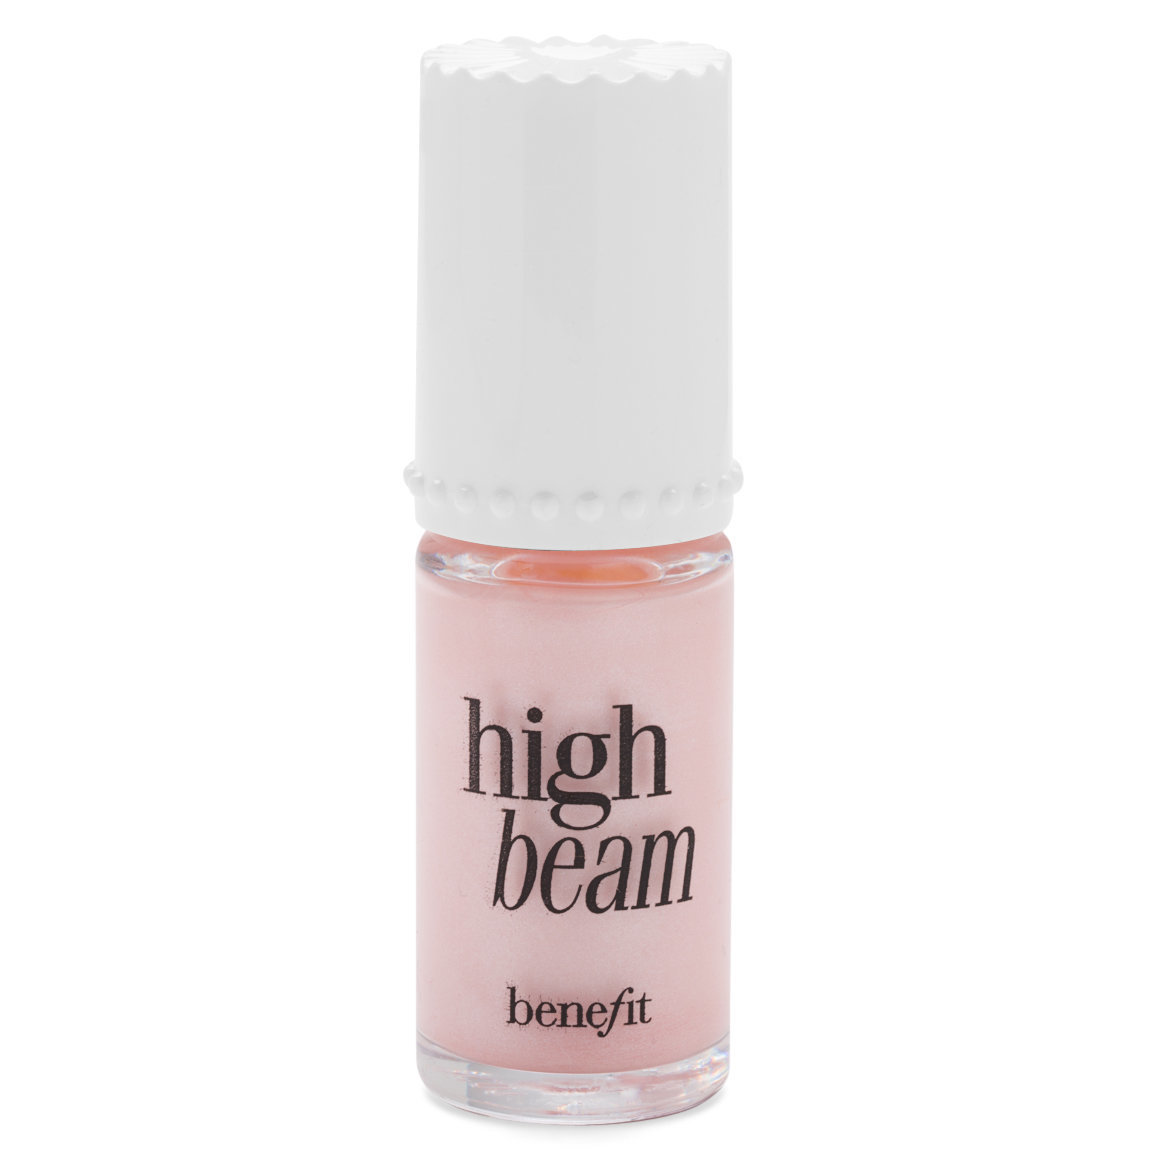 Benefit Cosmetics High Beam Liquid Highlighter 6 ml product smear.